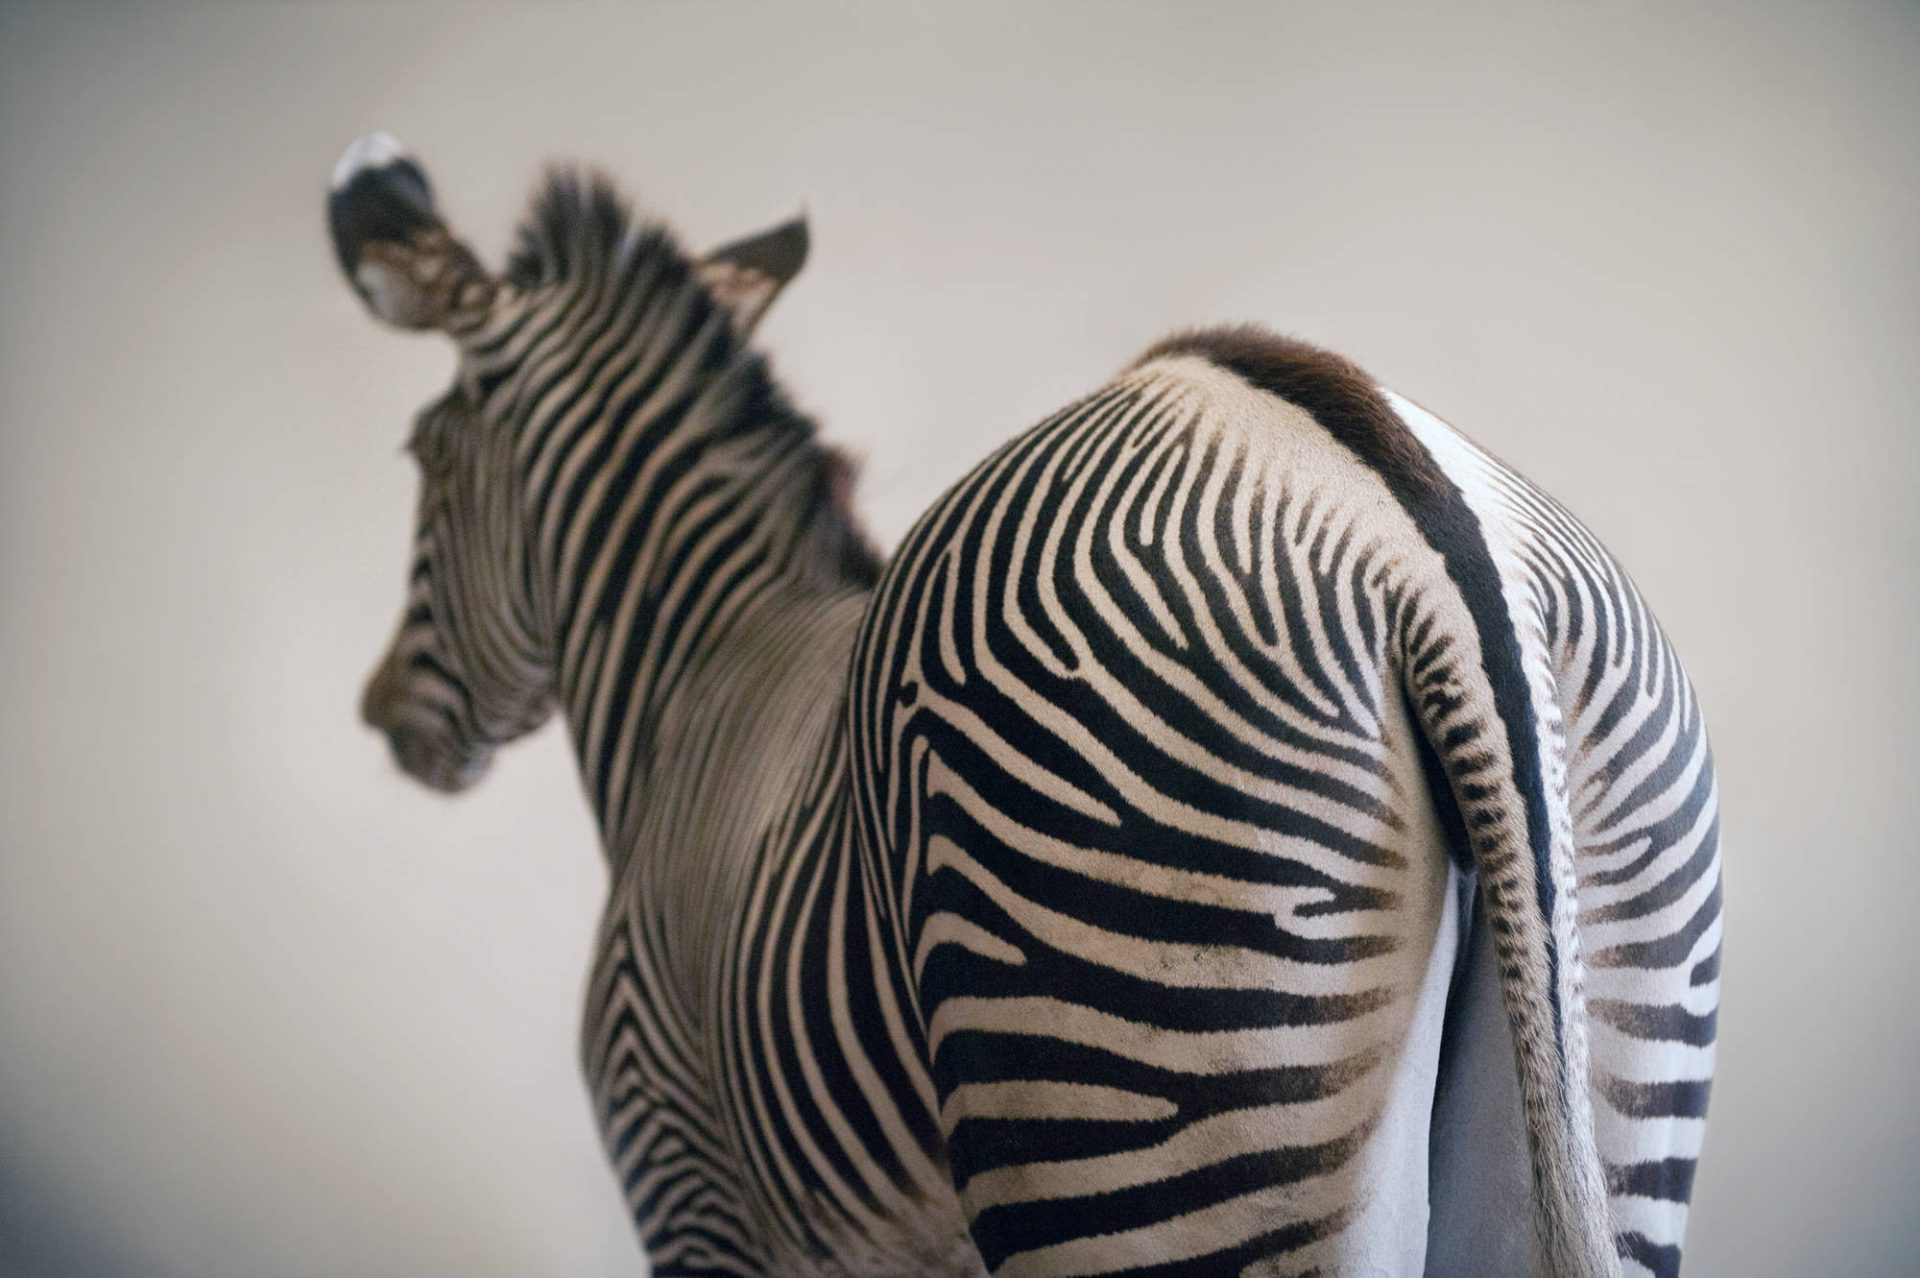 Photo: An endangered Grevy's zebra (Equus grevyi) at the Lee G. Simmons Conservation Park and Wildlife Safari.